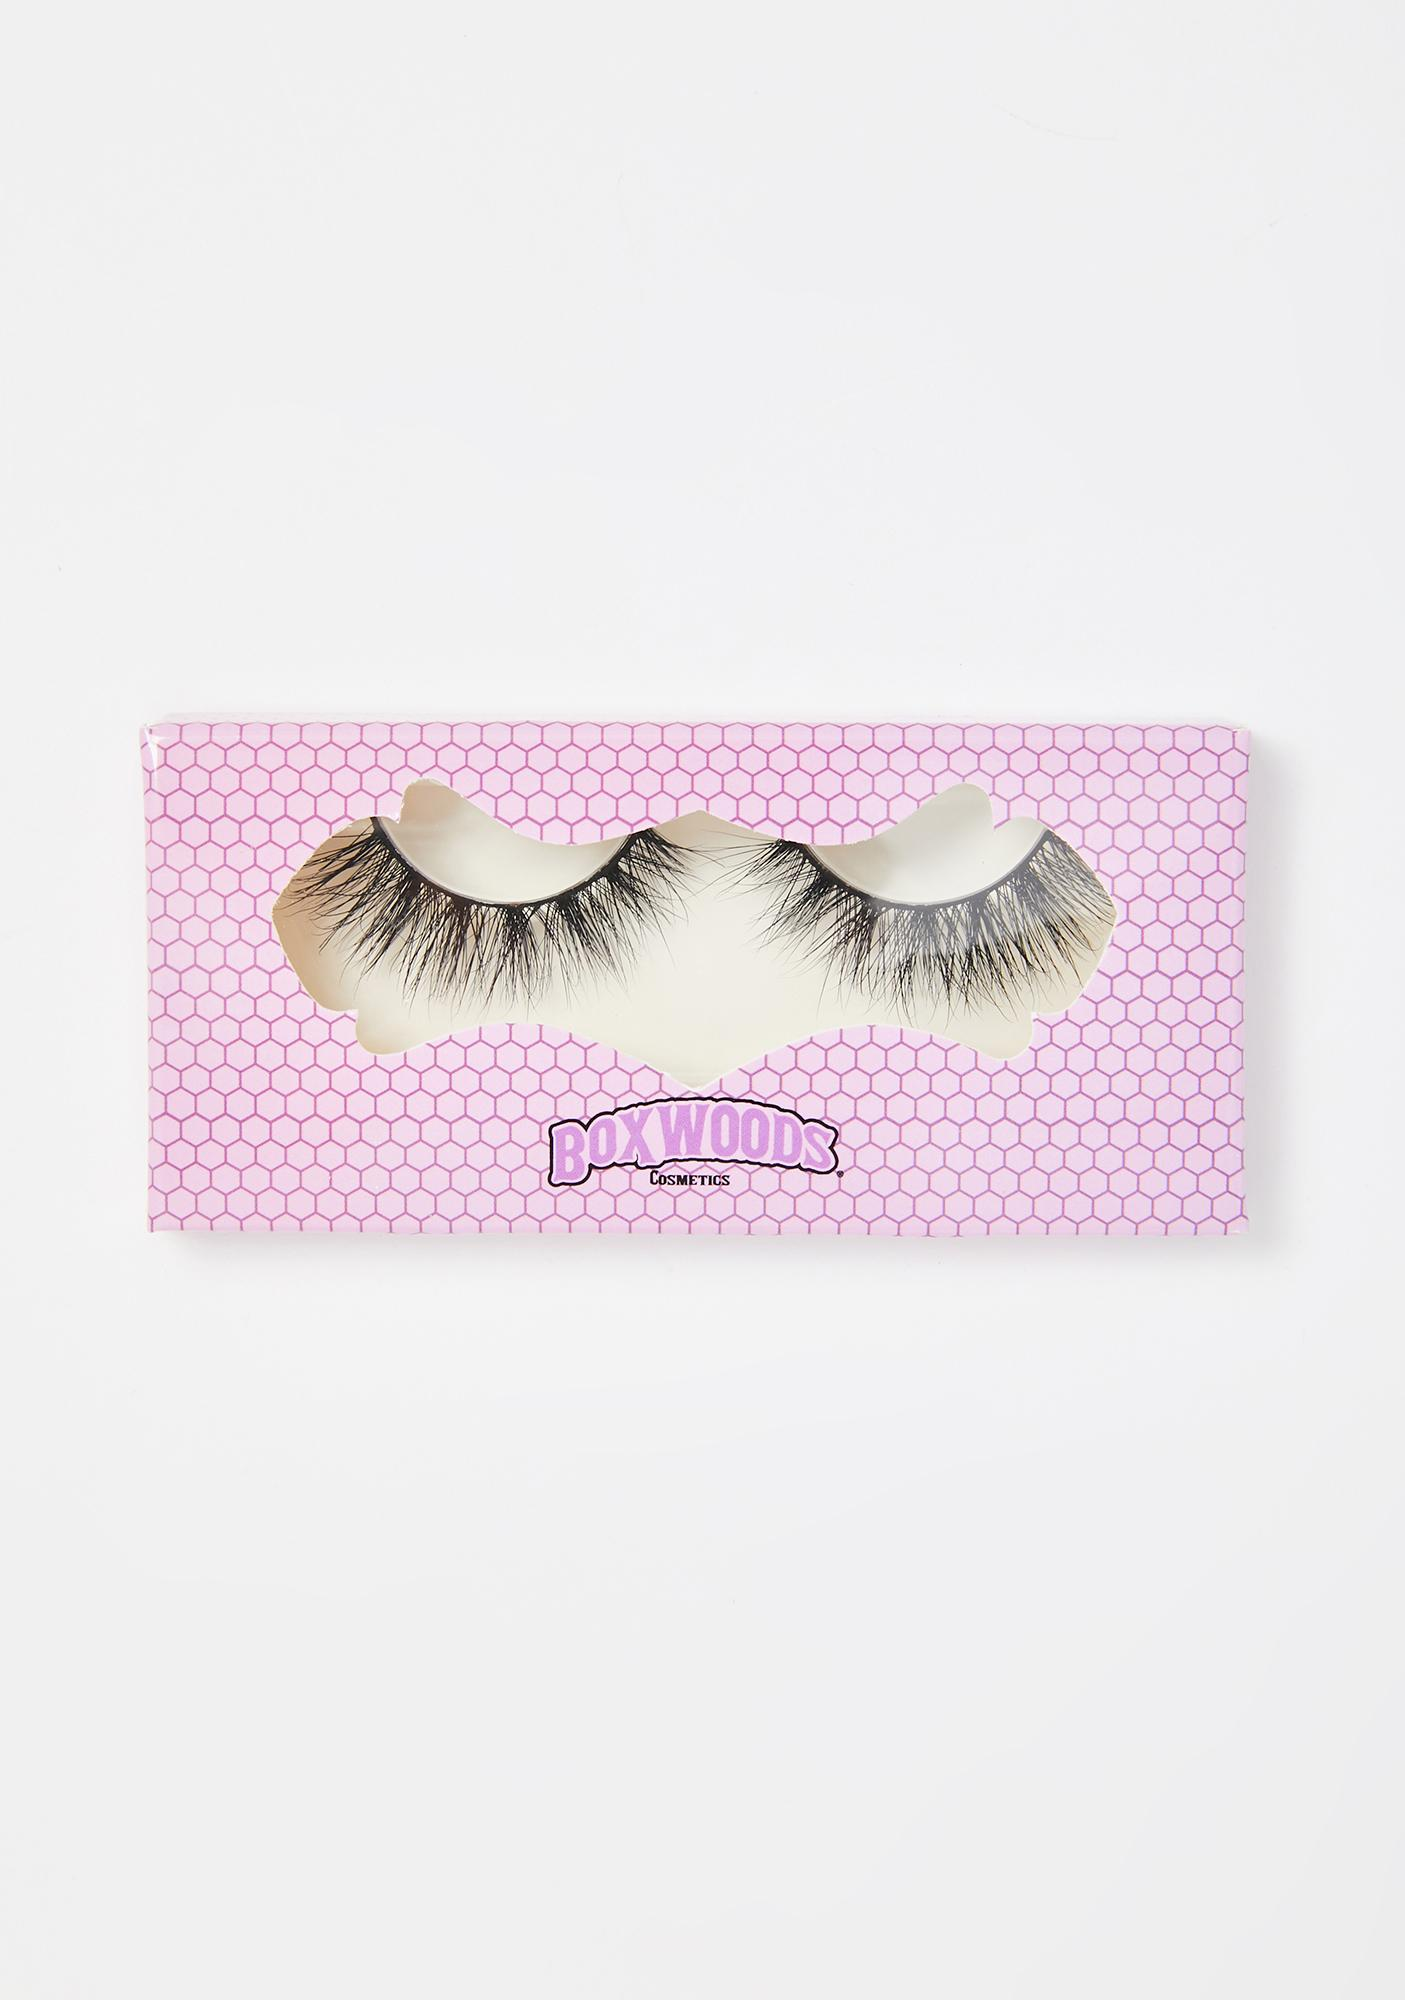 Boxwoods Cosmetics A Town False Lashes